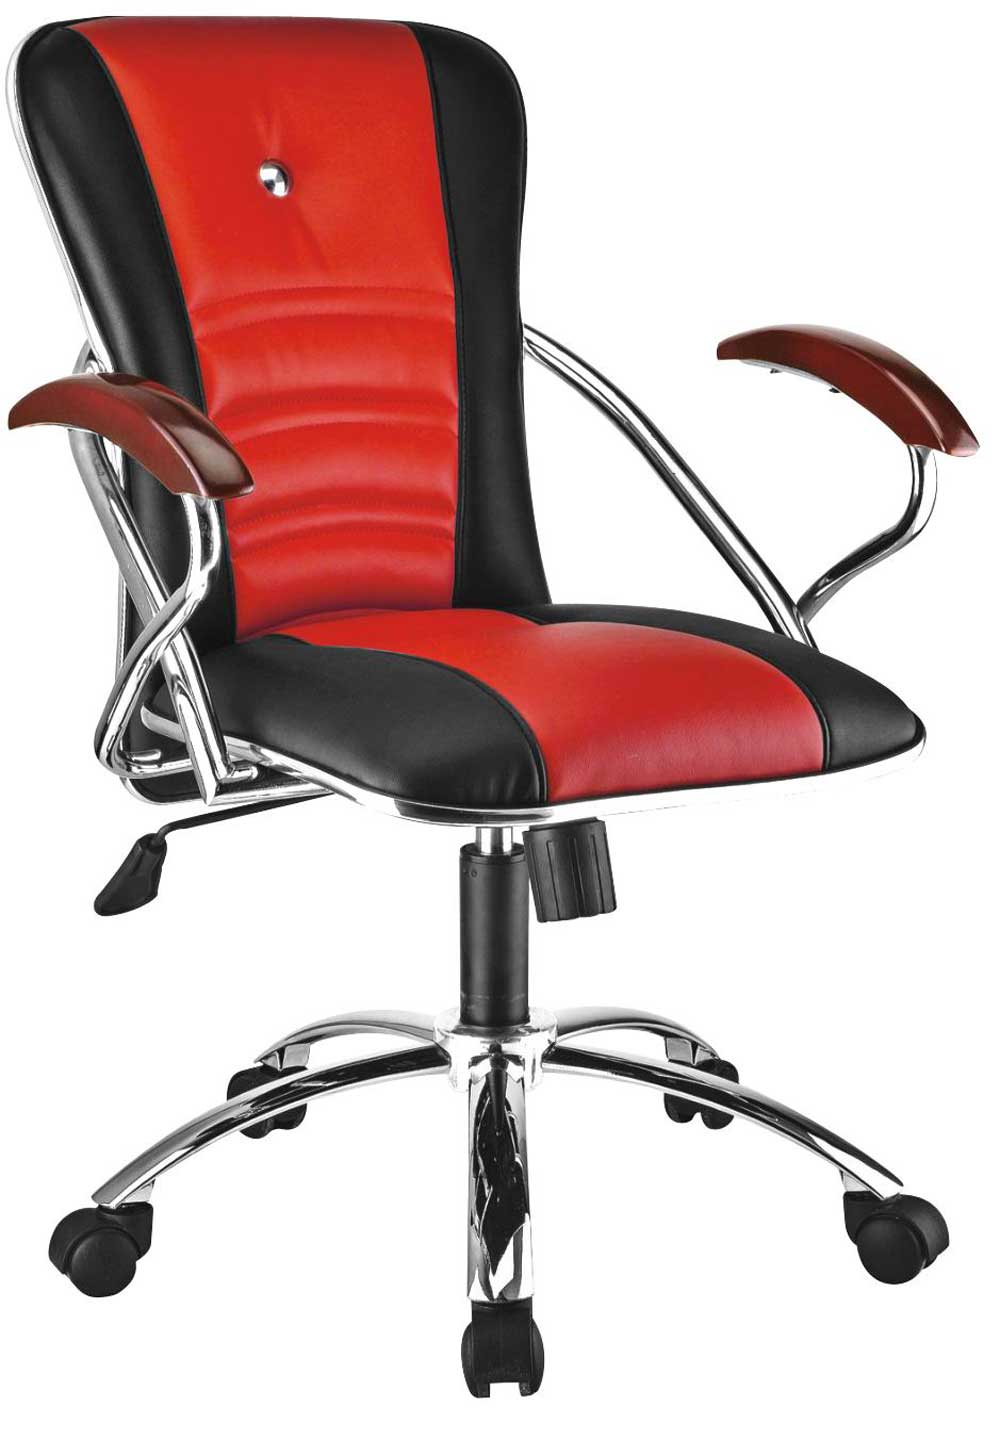 High back red and black ergonomic office manager chair with arms